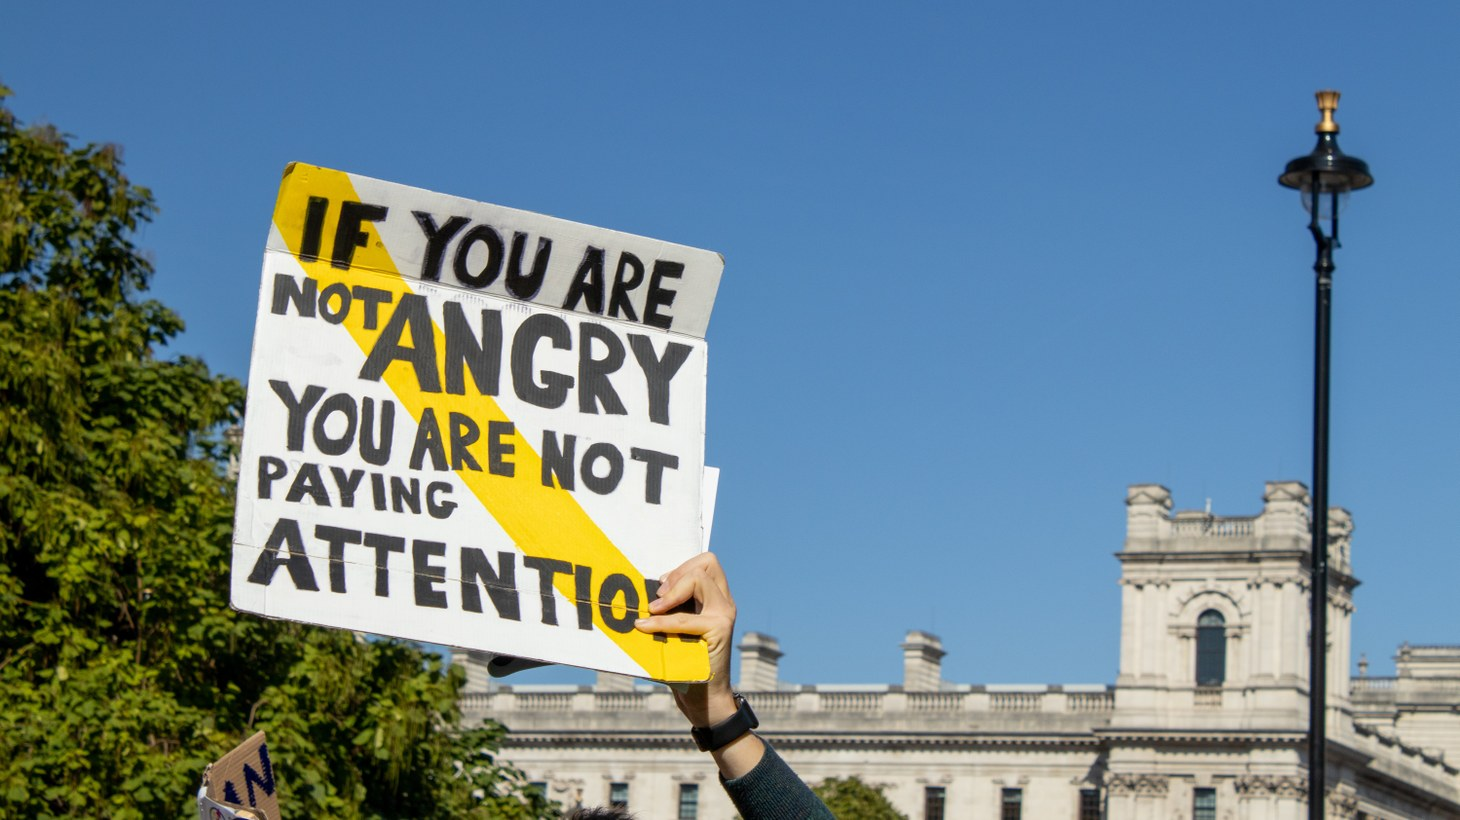 """At a climate rally in London, an activist holds a sign that says, """"If you are not angry, you are not paying attention."""""""